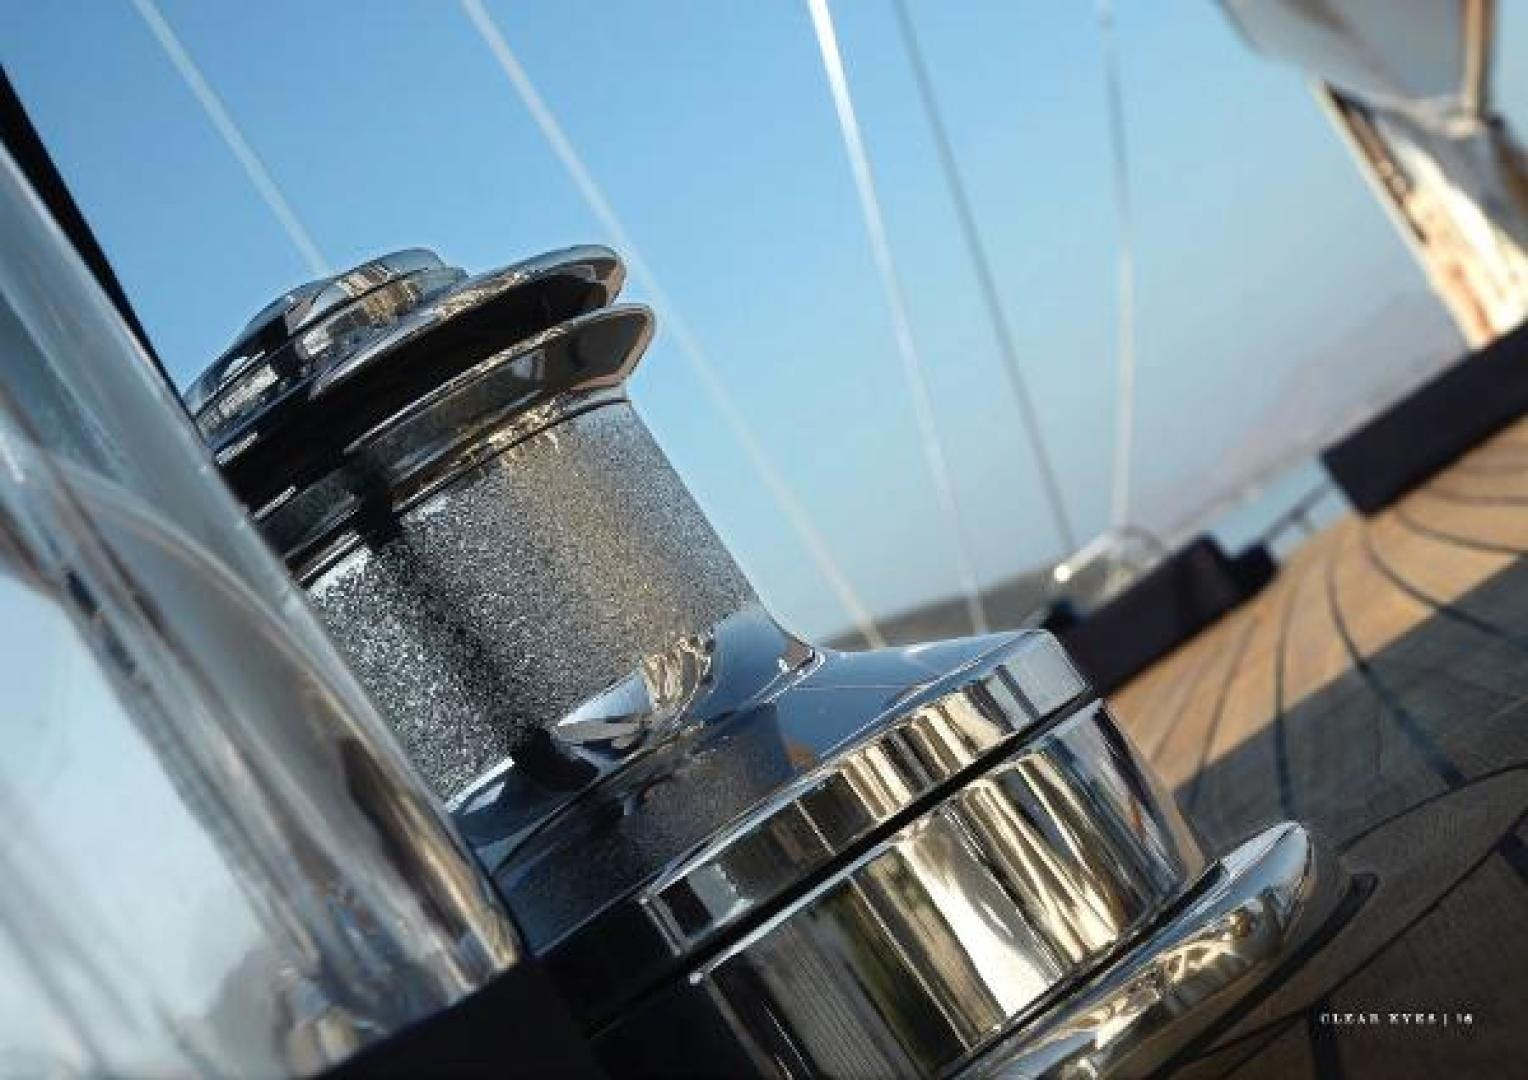 2010 Ketch 144' Pax Navi Yachts CLEAR EYES | Picture 6 of 22